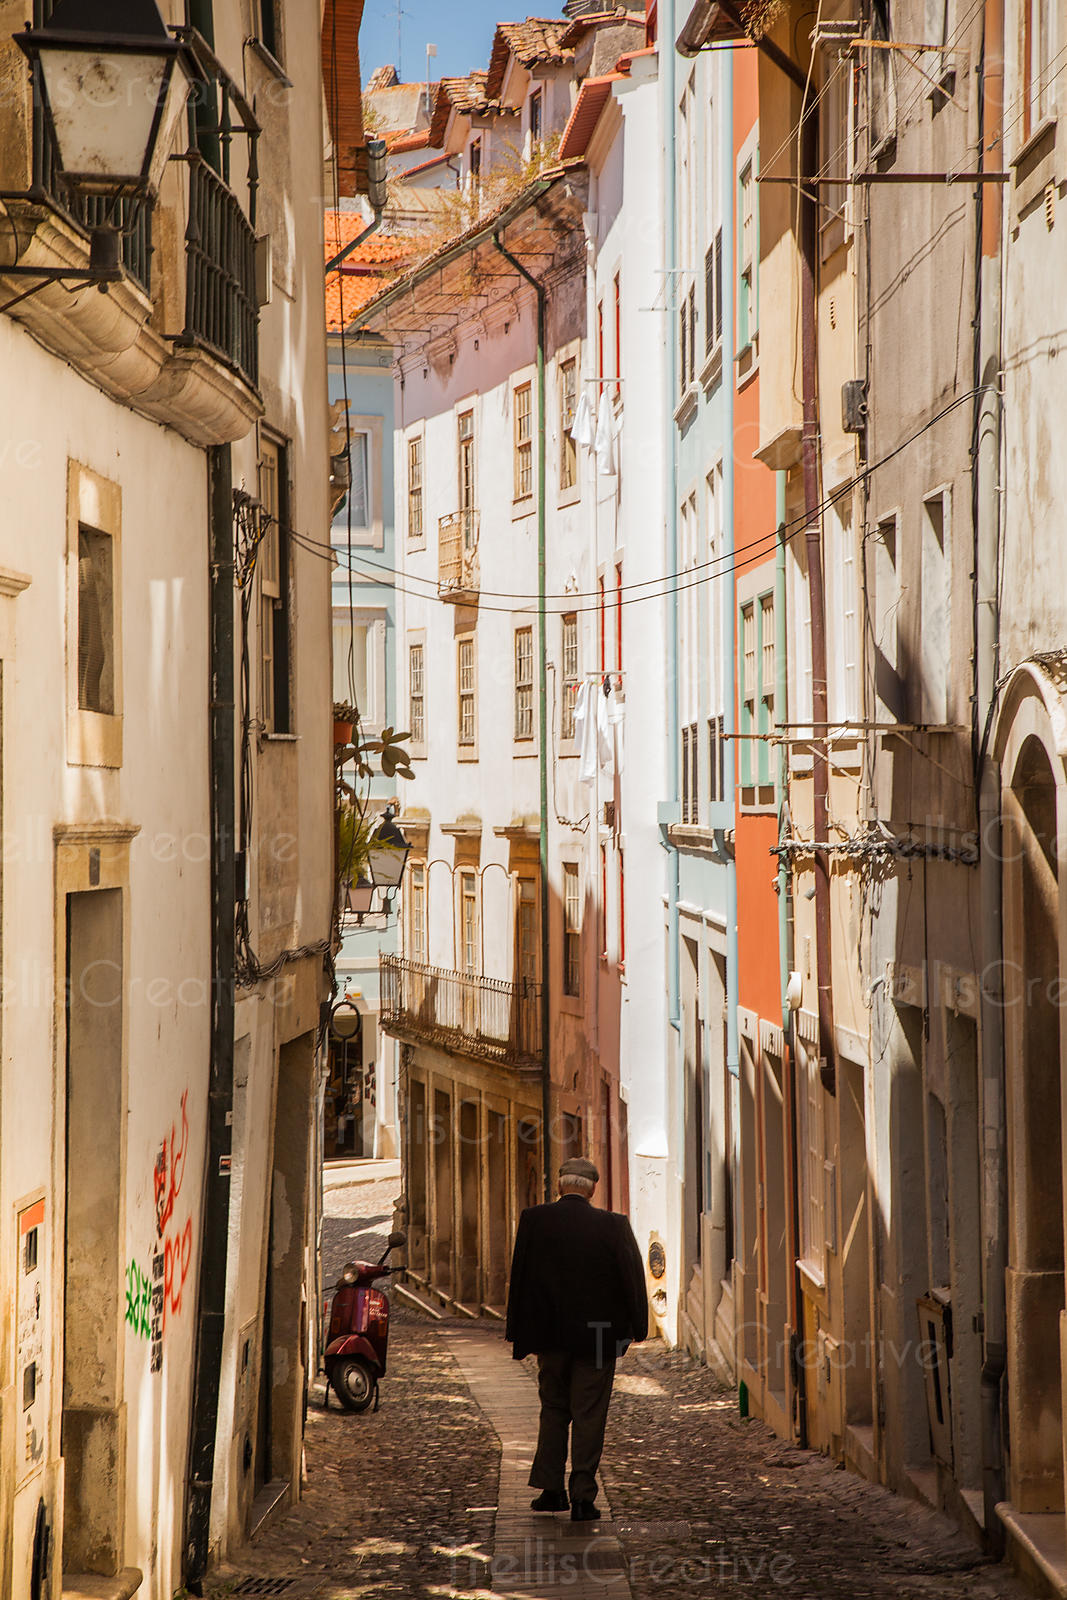 An old man walks down a colorful, narrow alley way in  Coimbra, Portugal